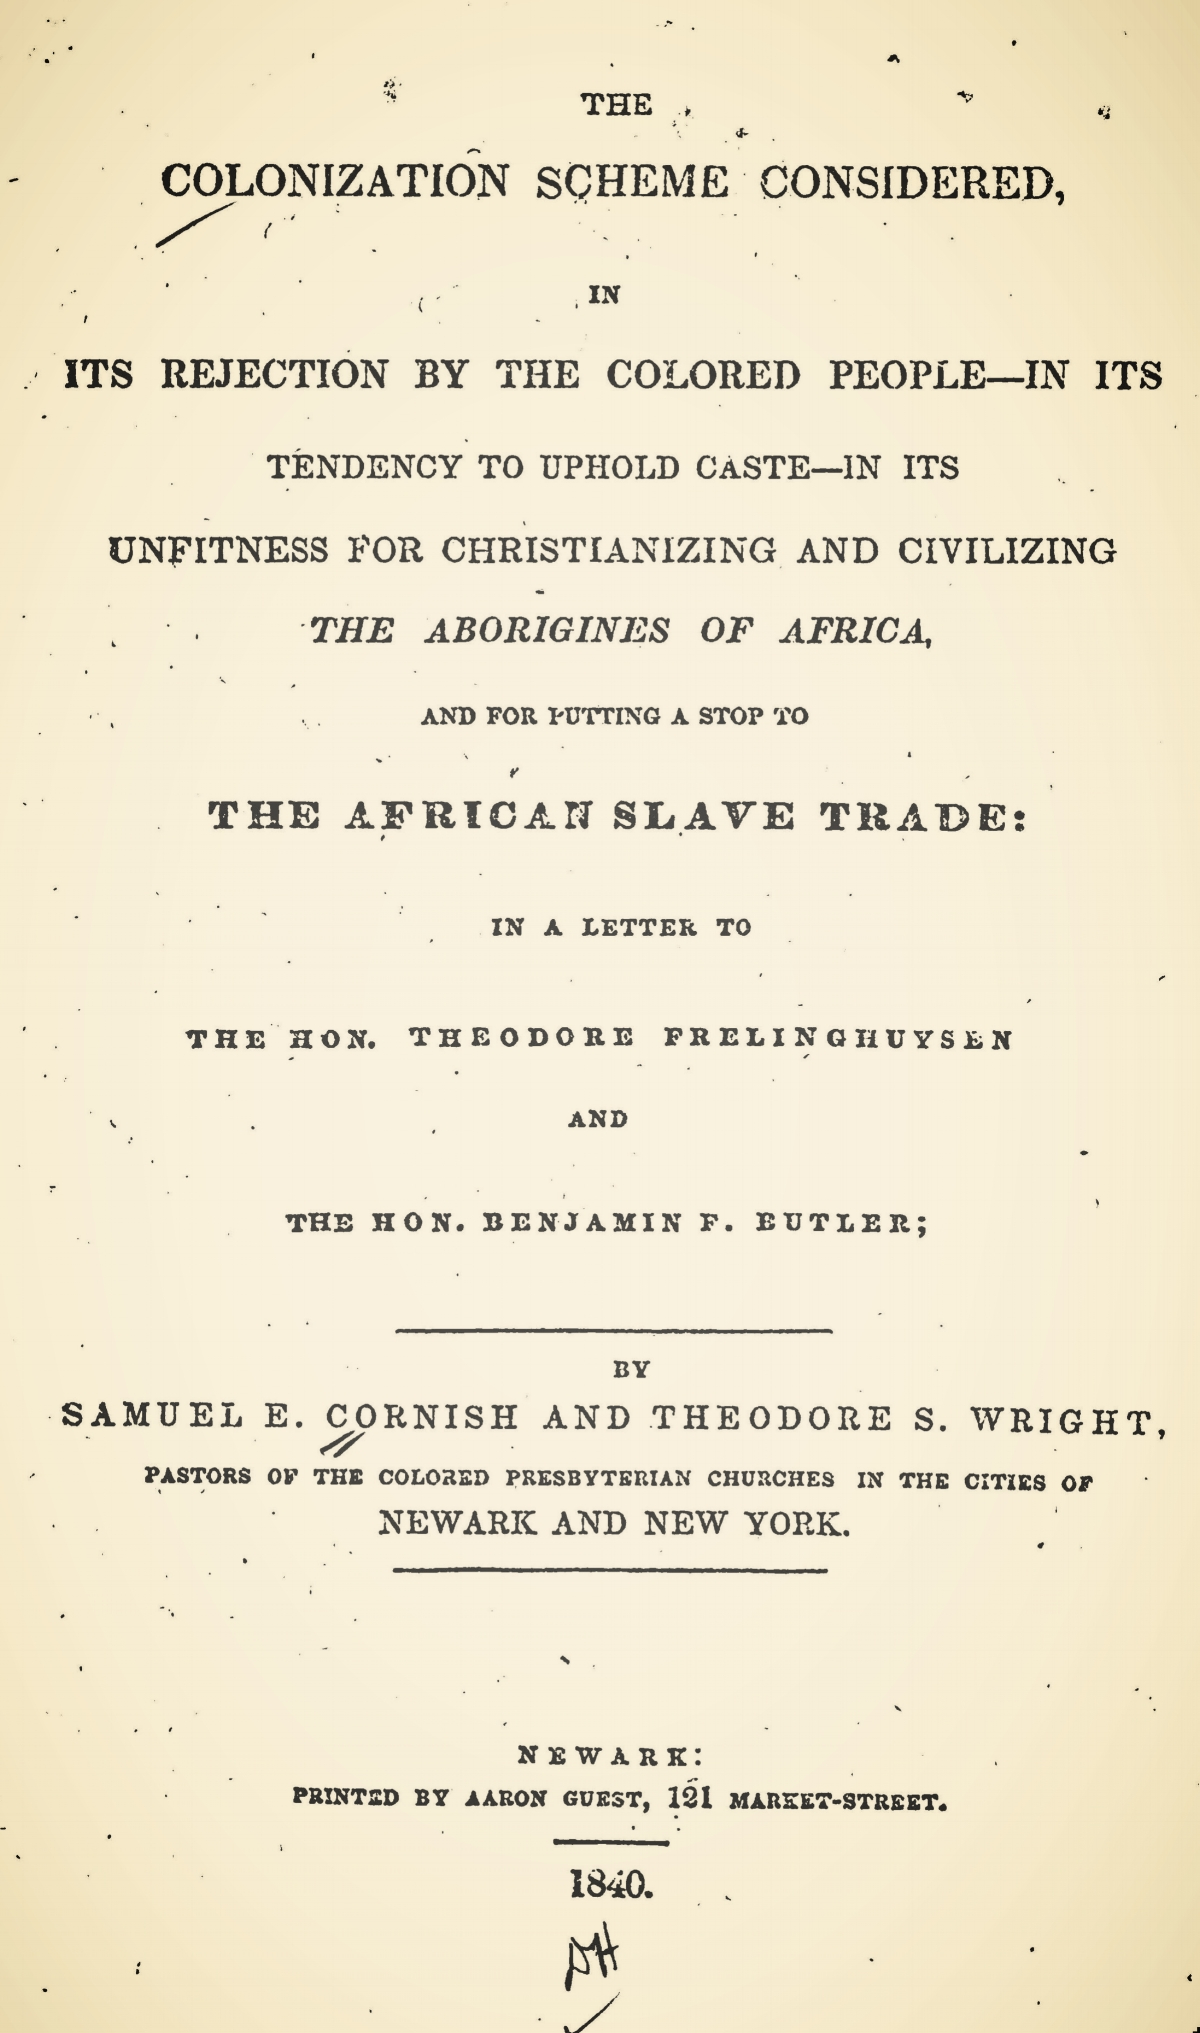 Wright, Theodore Sedgwick, The Colonization Scheme Considered Title Page.jpg